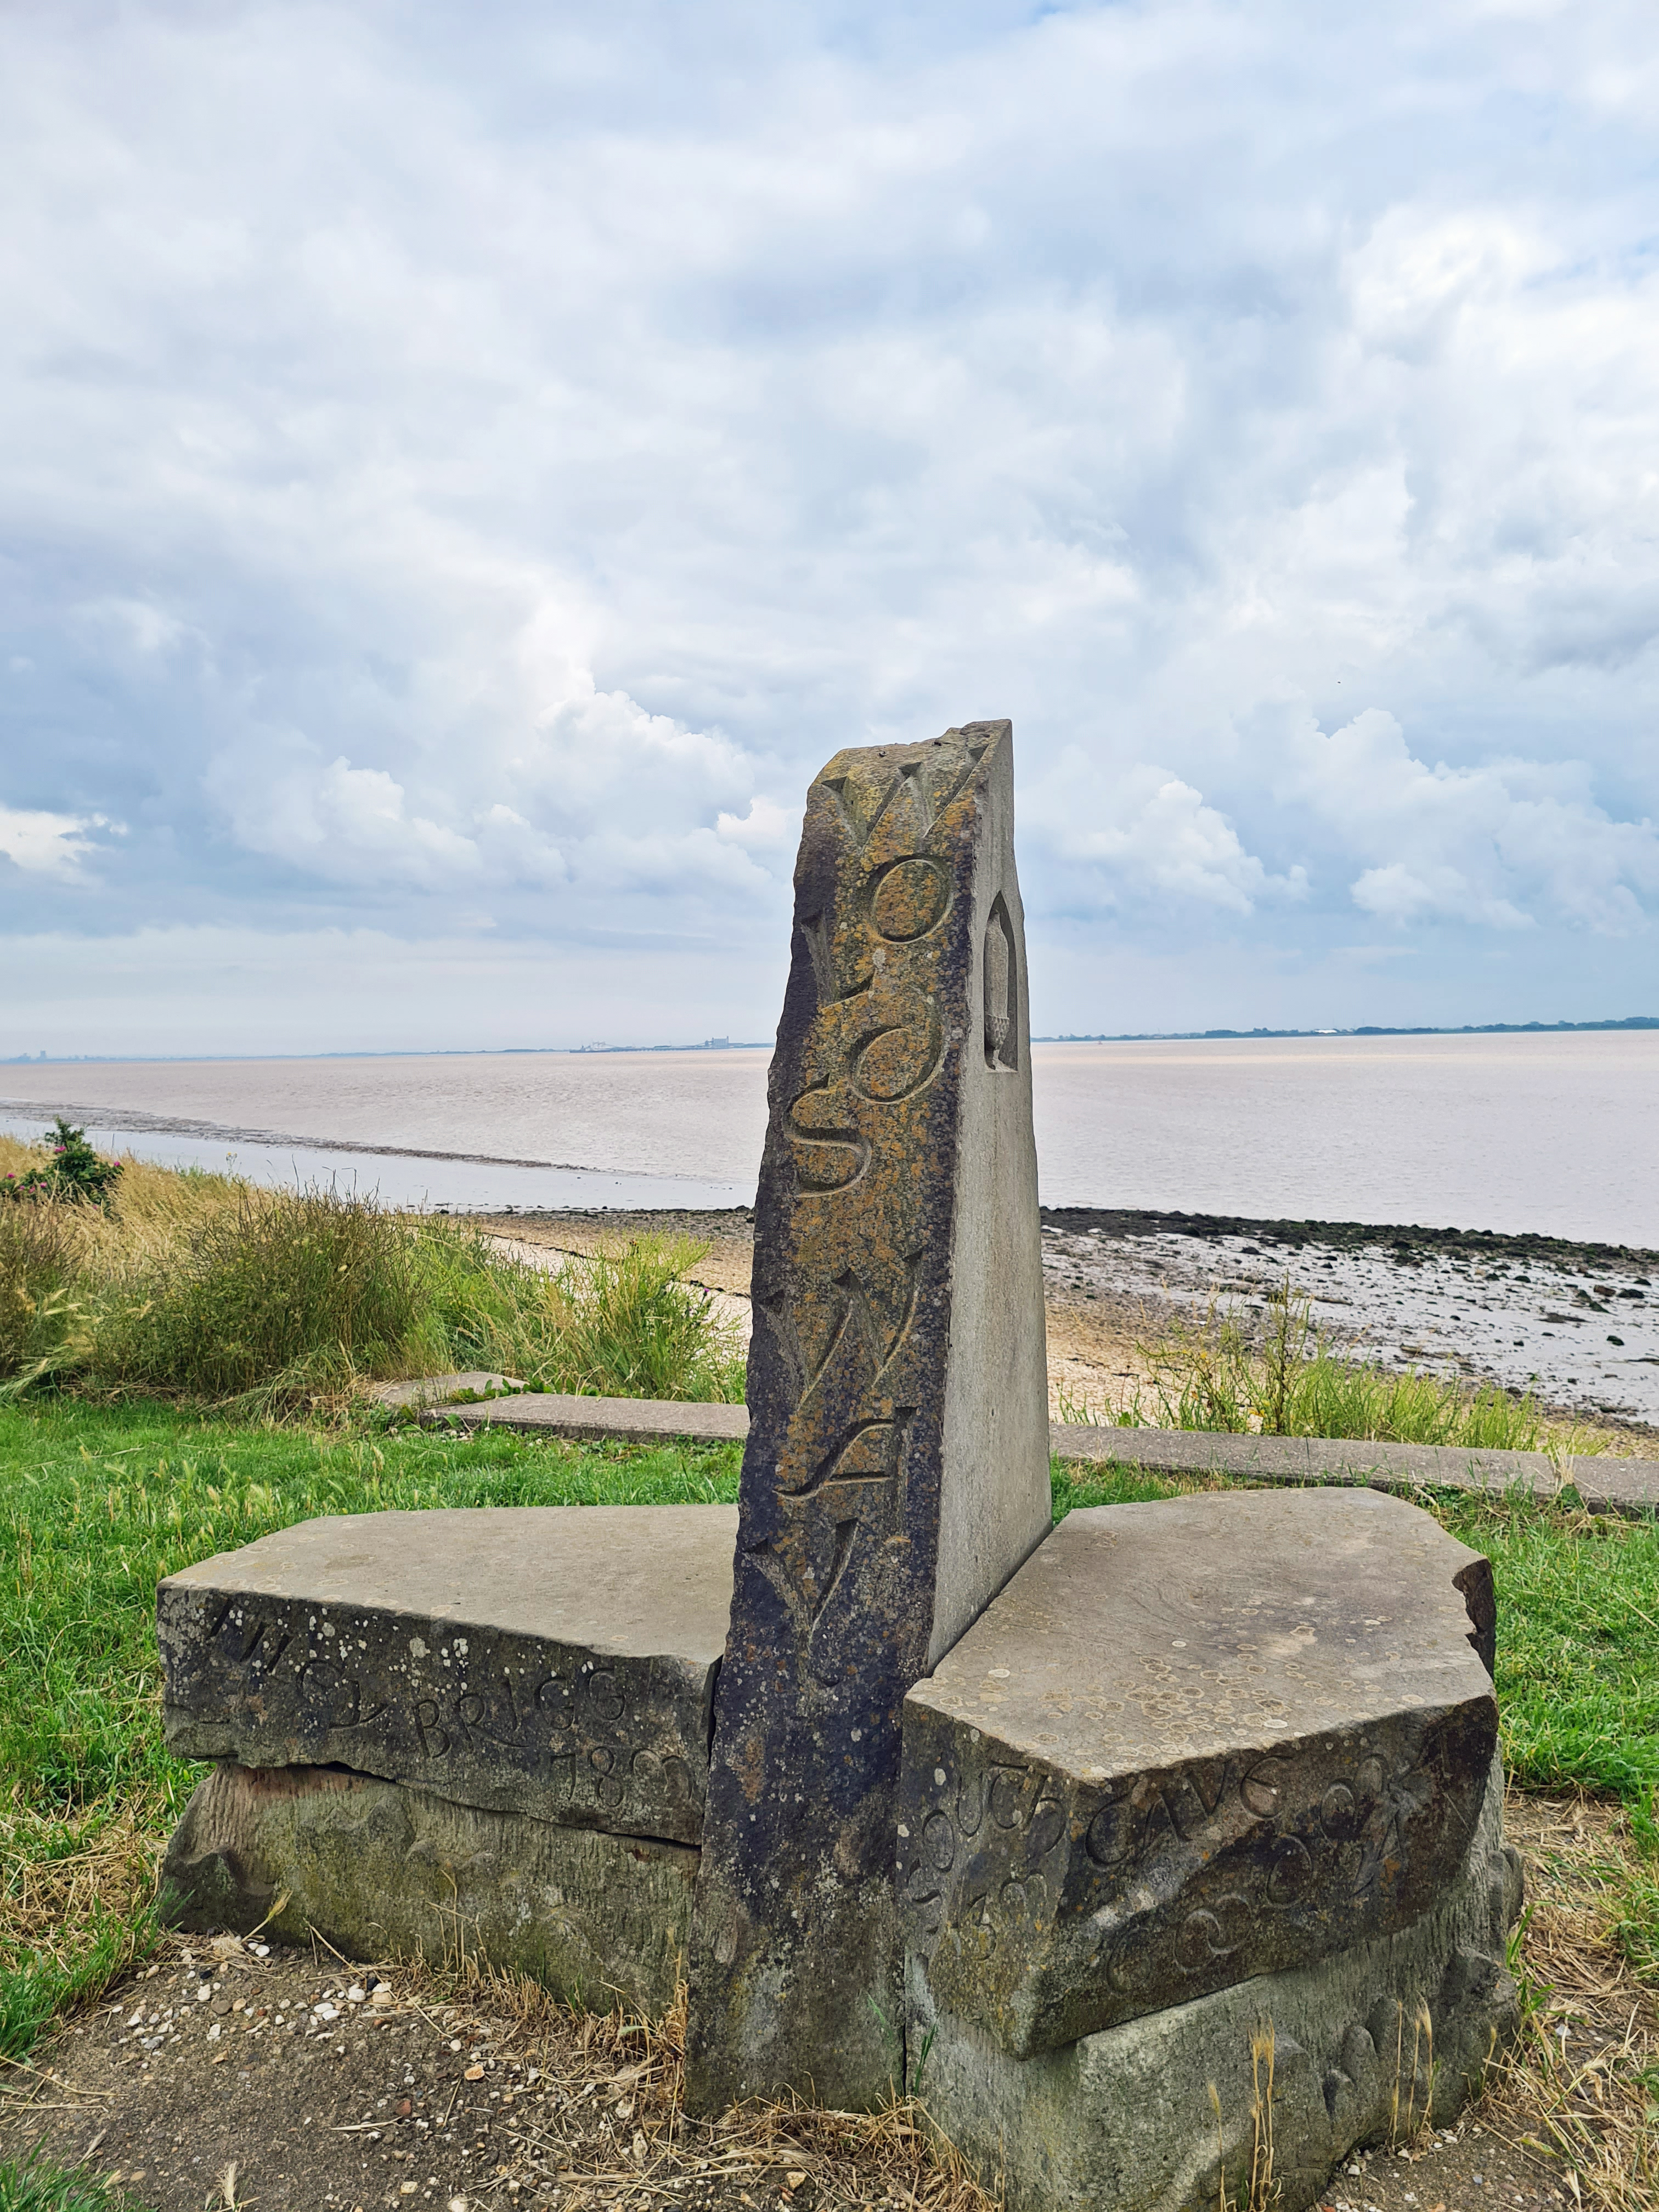 Many people walking the Yorkshire Wolds Way begin from the stone sculpture near the Humber Bridge